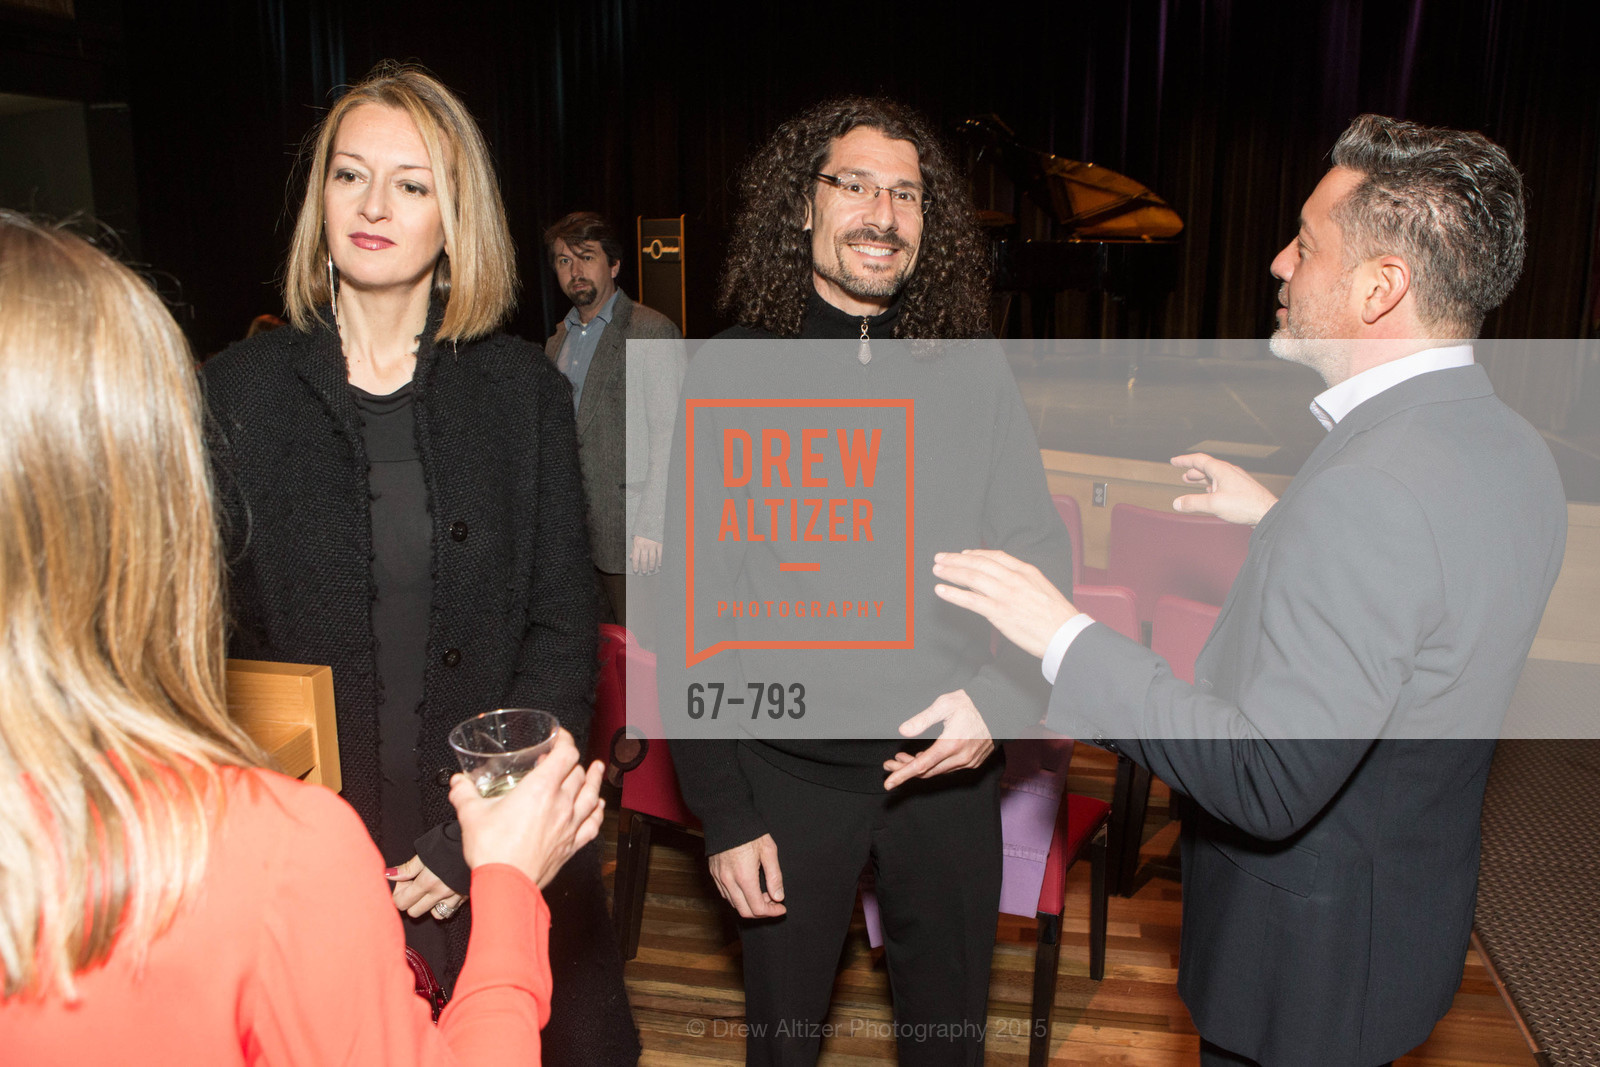 Ileana Facchini, Mitch Shapiro, Carlos Ramirez, SF BRAVO CLUB Sneak Peek at the EXPLORATORIUM, US, April 22nd, 2015,Drew Altizer, Drew Altizer Photography, full-service agency, private events, San Francisco photographer, photographer california